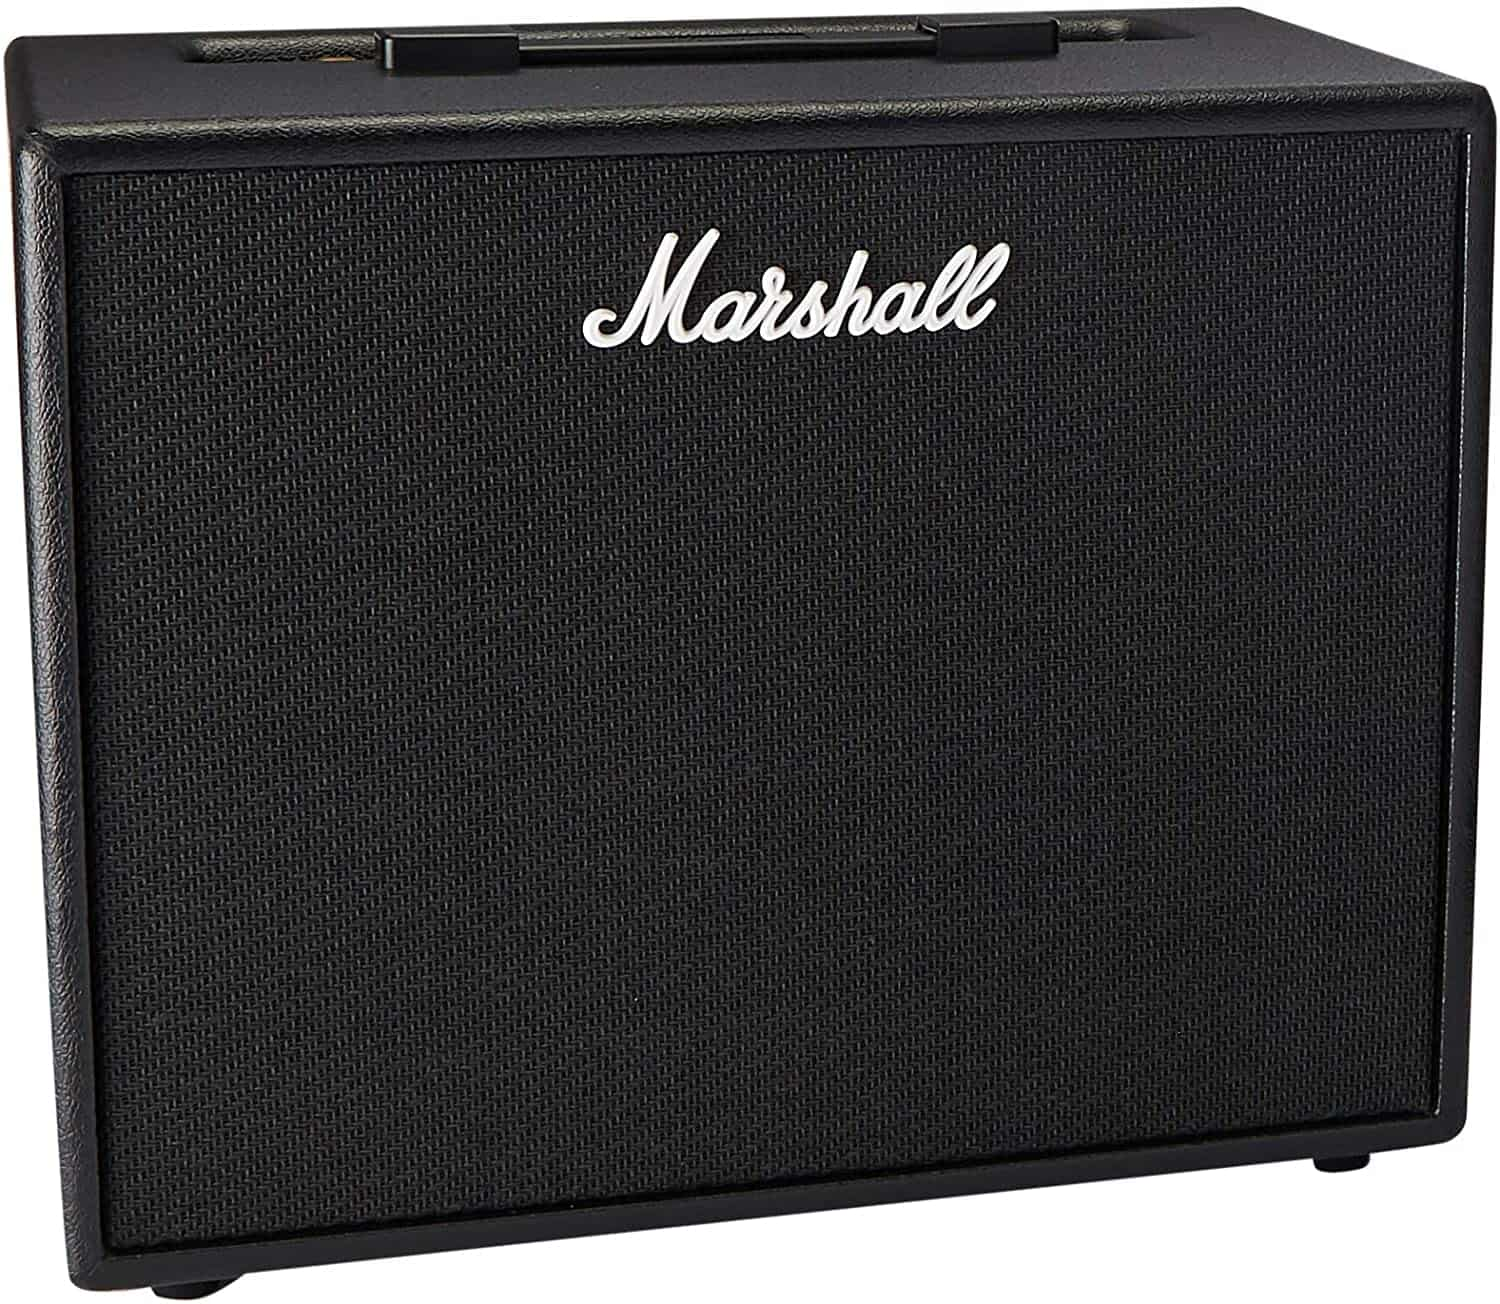 Best modeling amp for blues: Marshall Code 50W